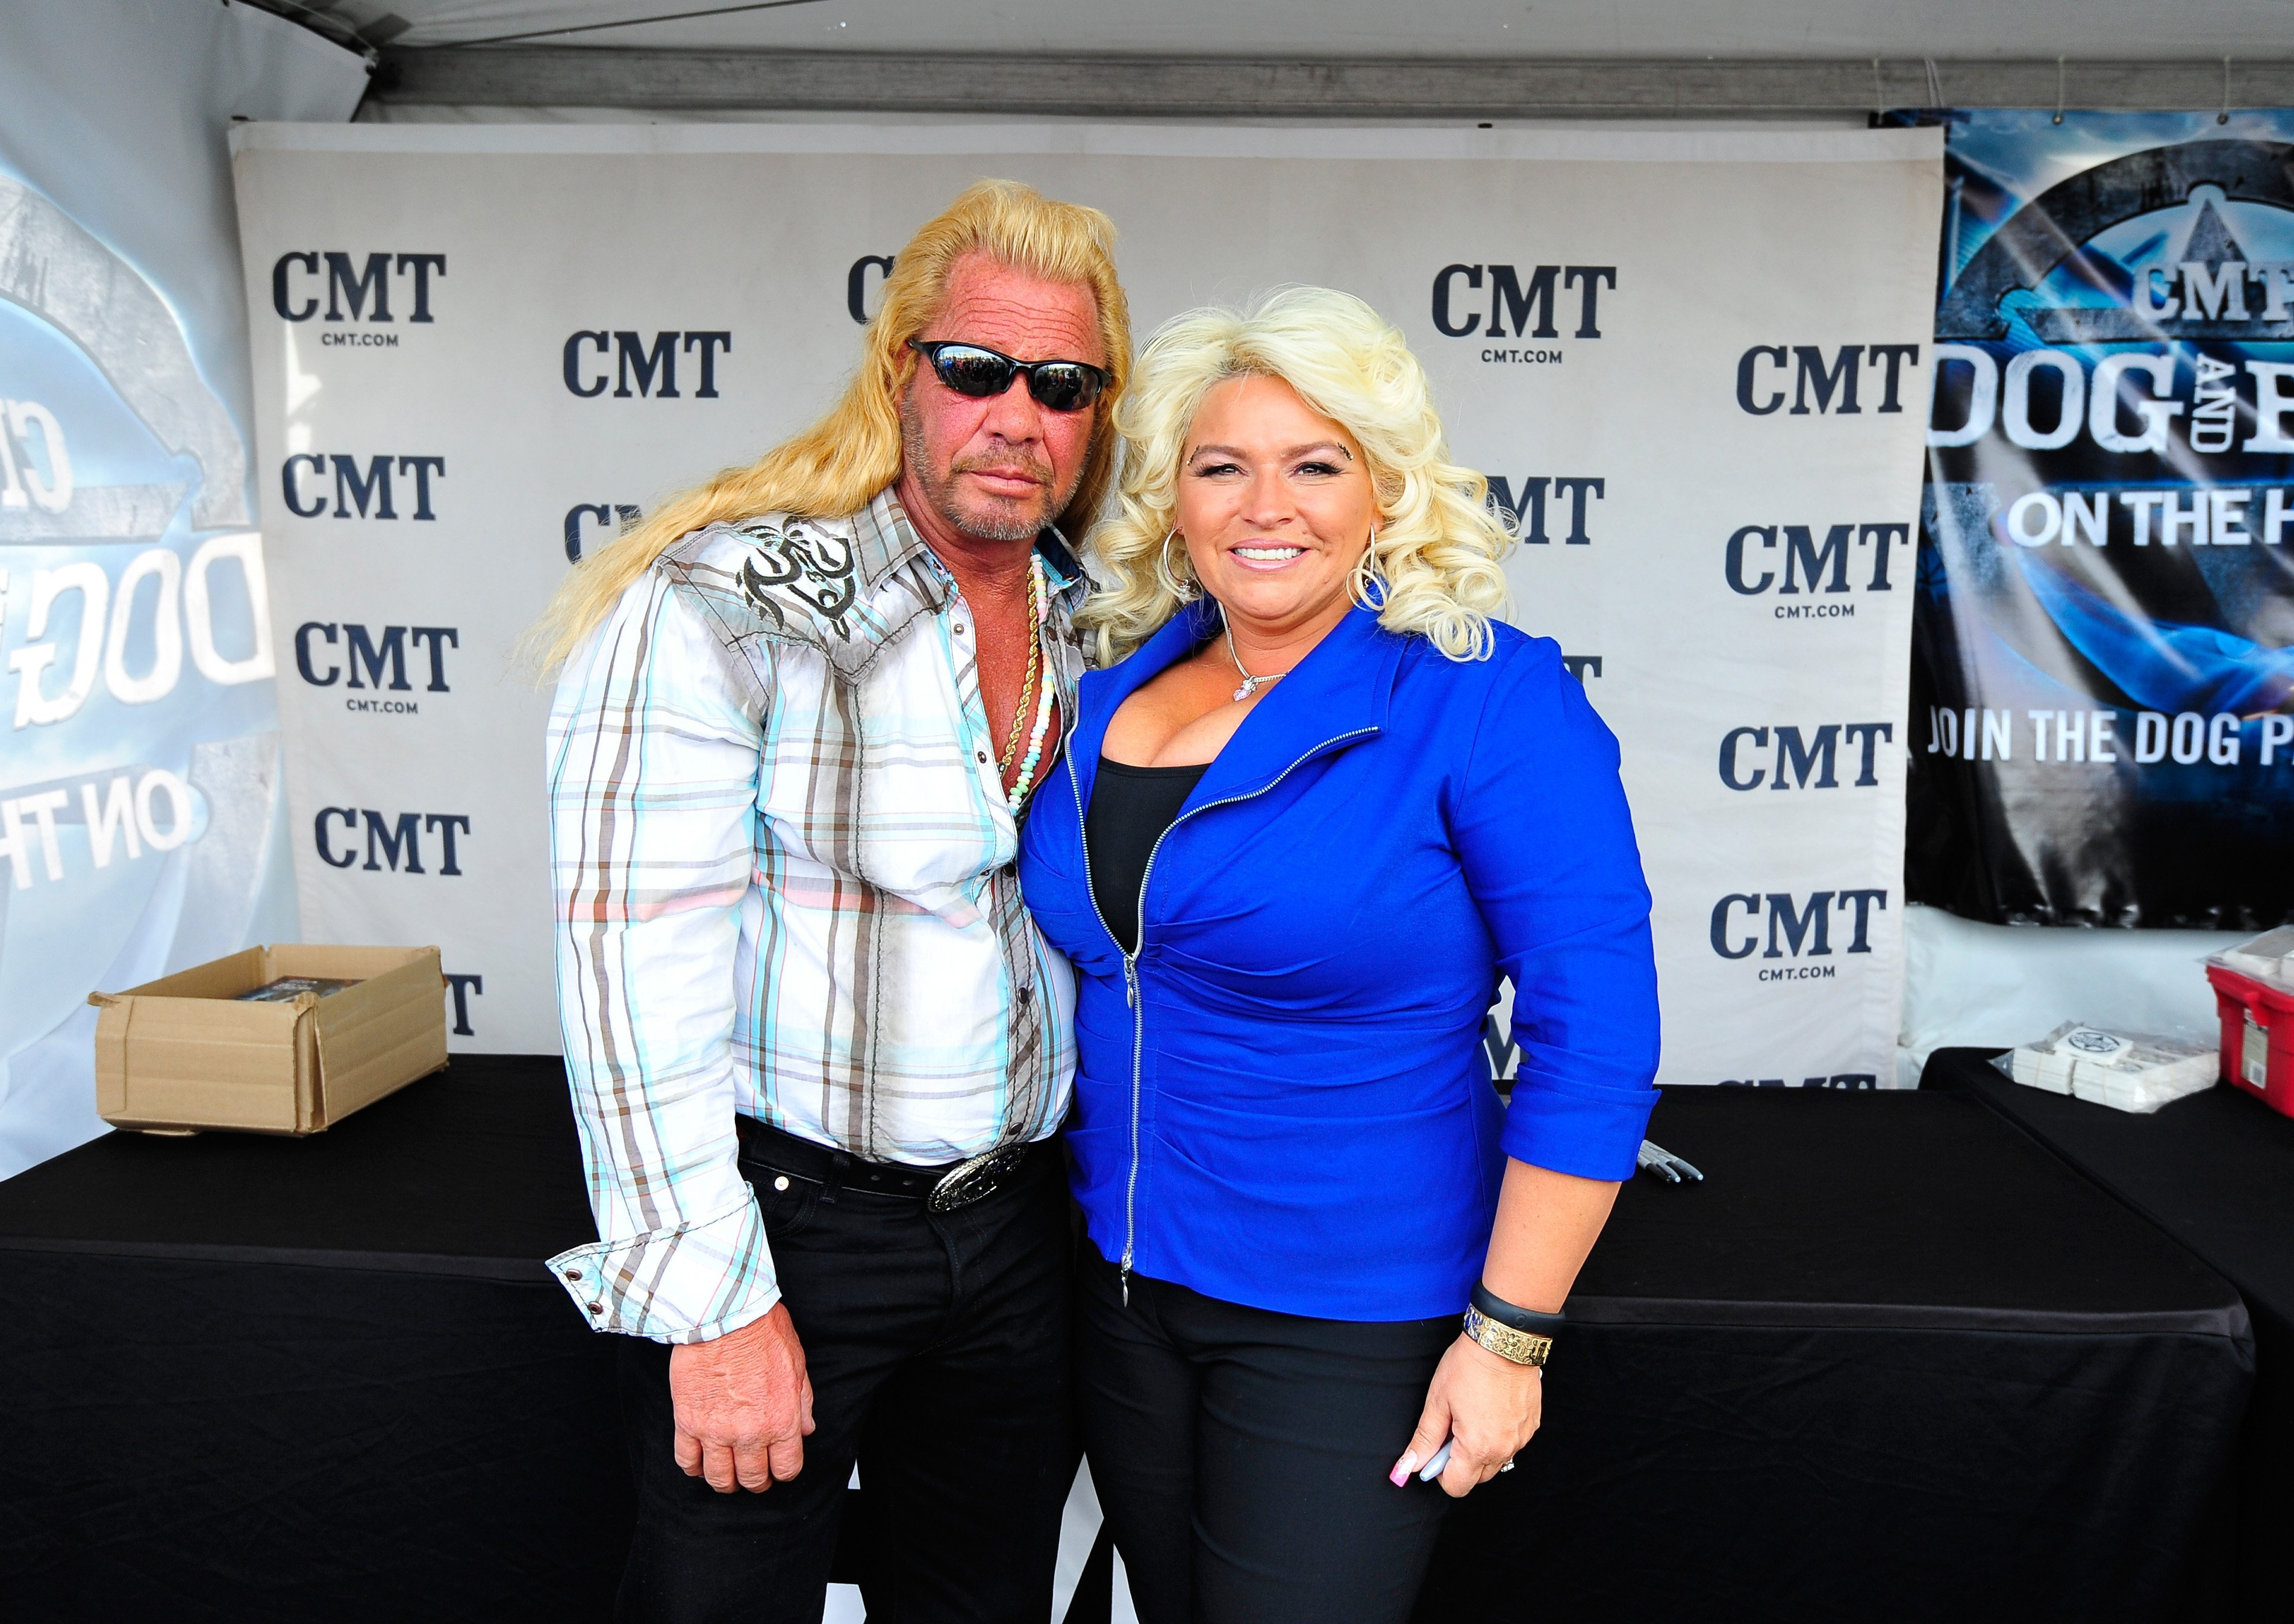 """Duane """"Dog"""" and Beth Chapman at the ACM Experience during the 48th Annual Academy of Country Music Awards at the Orleans Arena on April 5, 2013 in Las Vegas, Nevada 